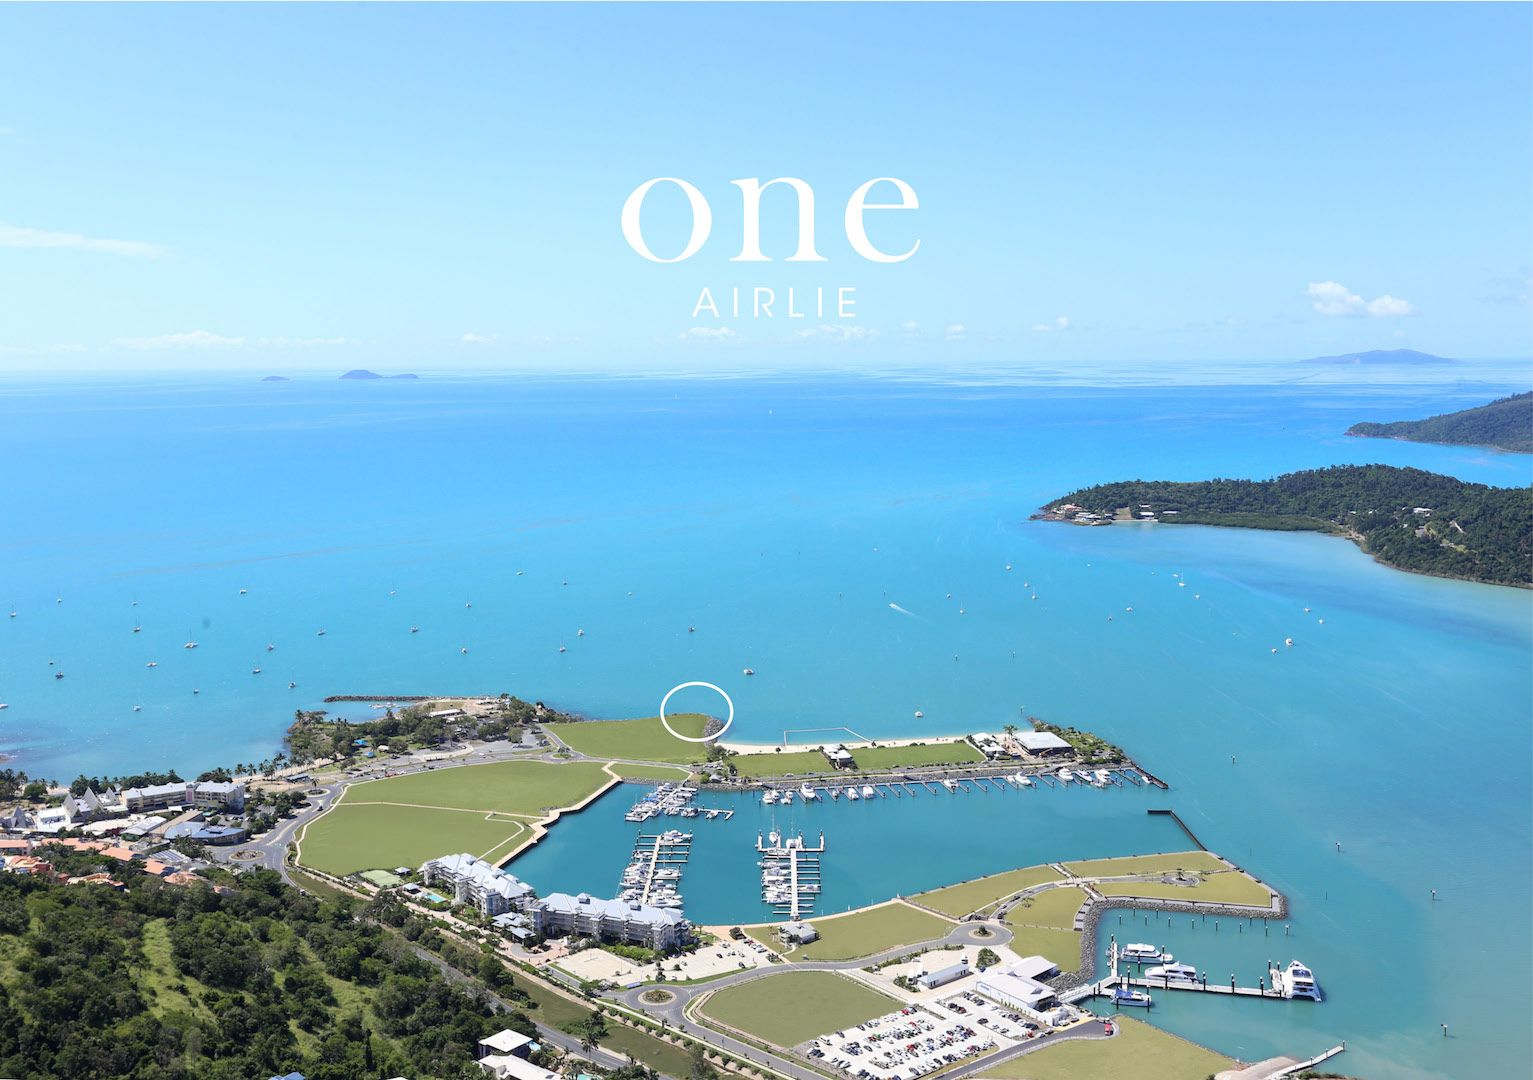 土地 / 的地塊 为 销售 在 One Airlie - An unrepeatable opportunity to create a luxury Whitsundays residence Airlie Beach, 昆士兰,4802 澳大利亚